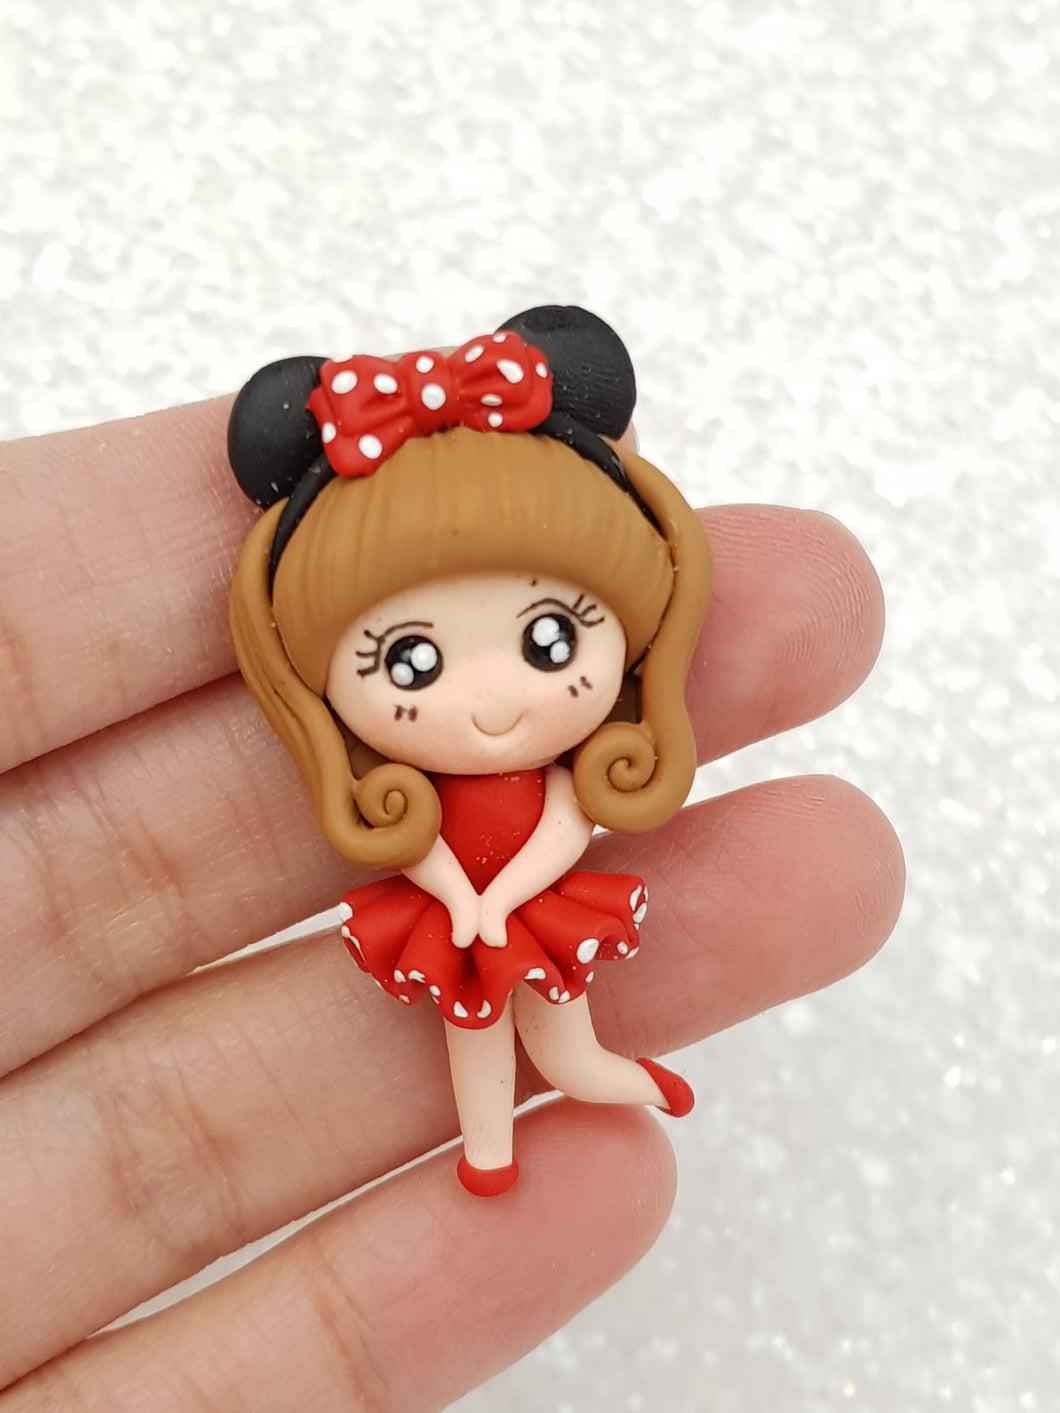 Clay Charm Embellishment - NEW MOUSE GIRL C - Crafty Mood